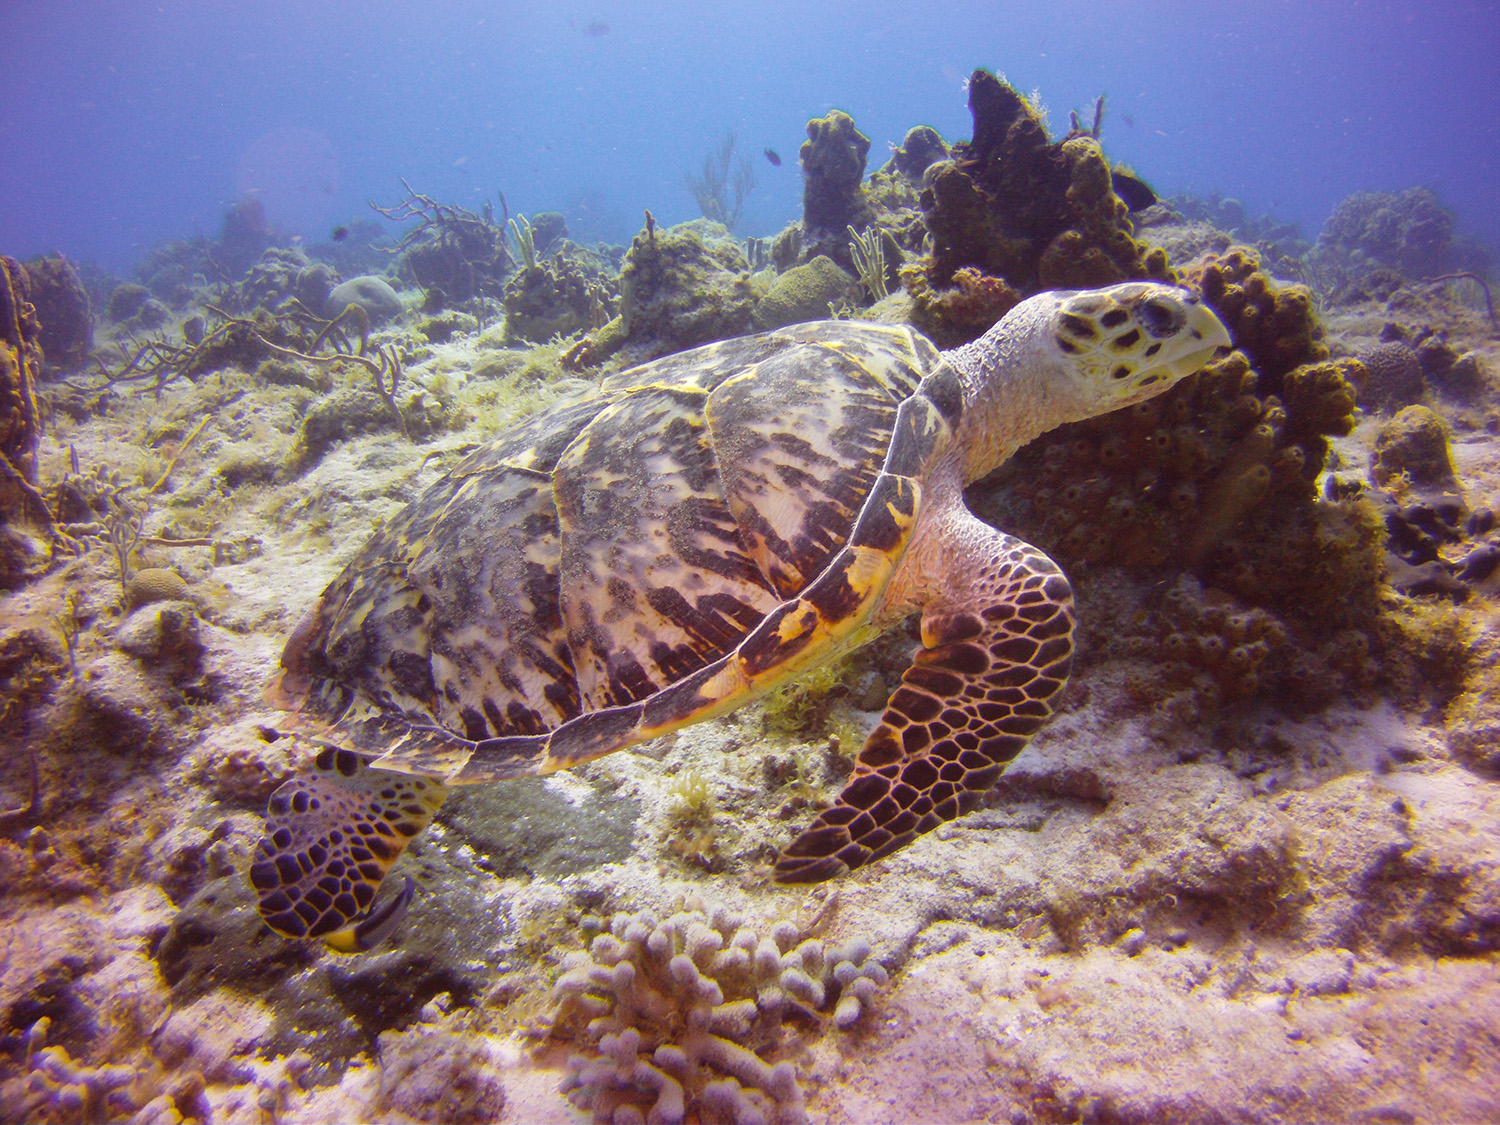 best cruise ship stops for scuba diving in the Caribbean Cozumel turtle